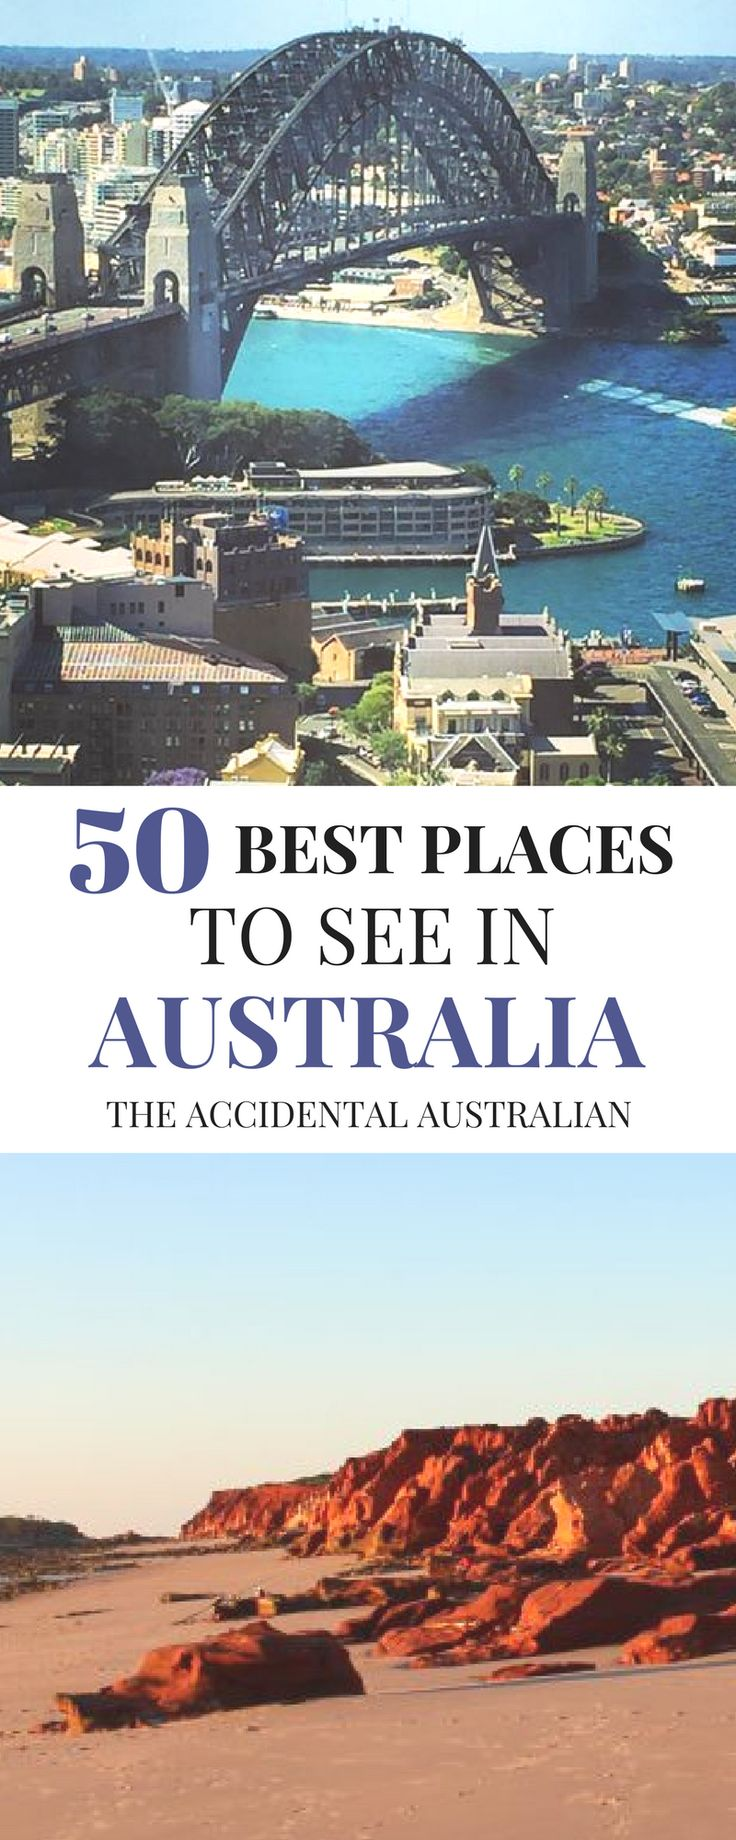 Here's a list of 50 of the best places to see in Australia #travel #traveldestinations #australiatravel